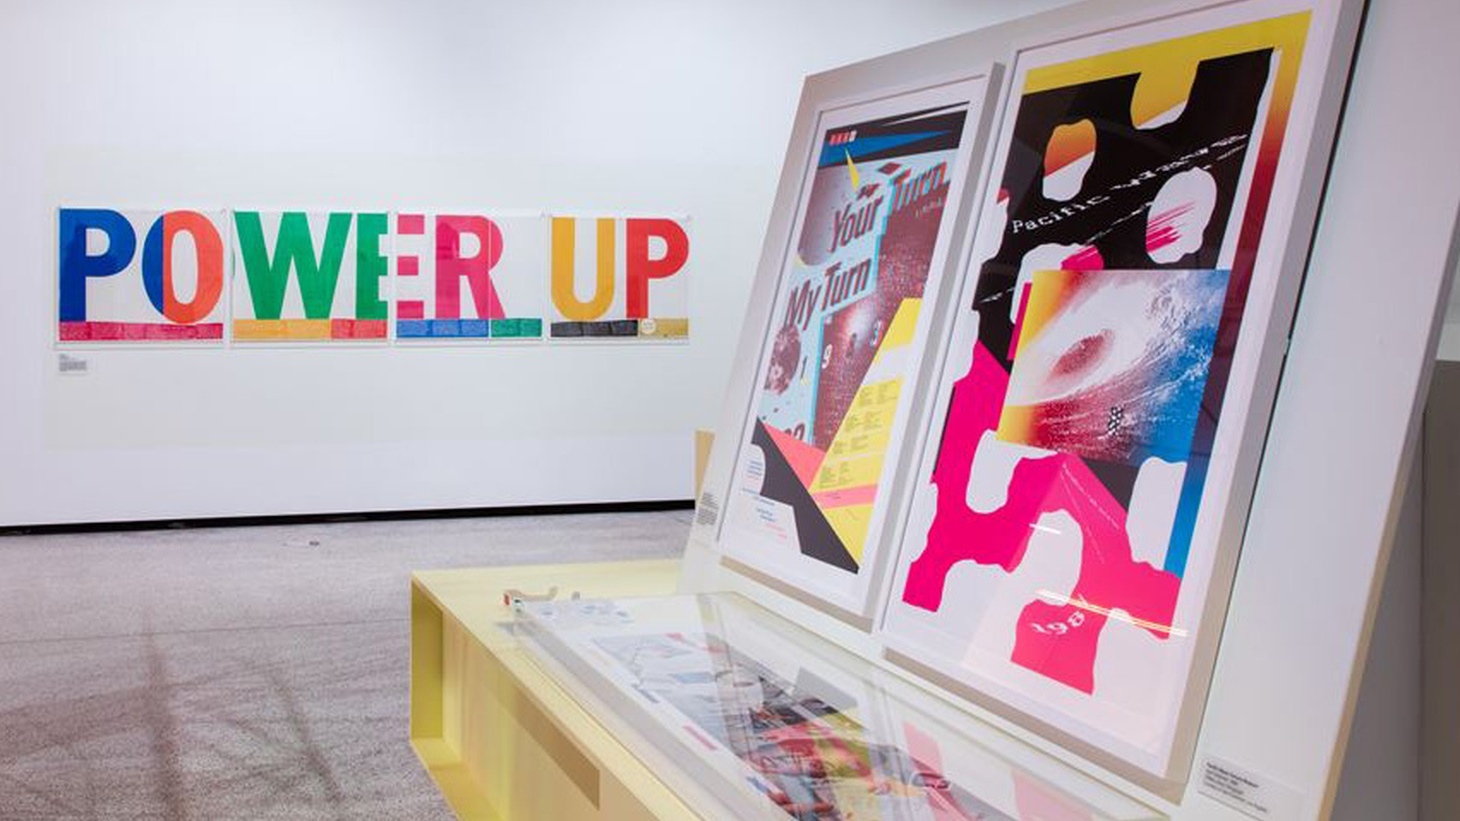 Everyone is Californian now, says the co-curator of California: Designing Freedom, a show on display in London. We look at how West Coast design dominates the world. And as cities around the country remove Confederate statues, there's a debate over whether they should be torn down in the name of today's social values, or maintained as teachable moments.